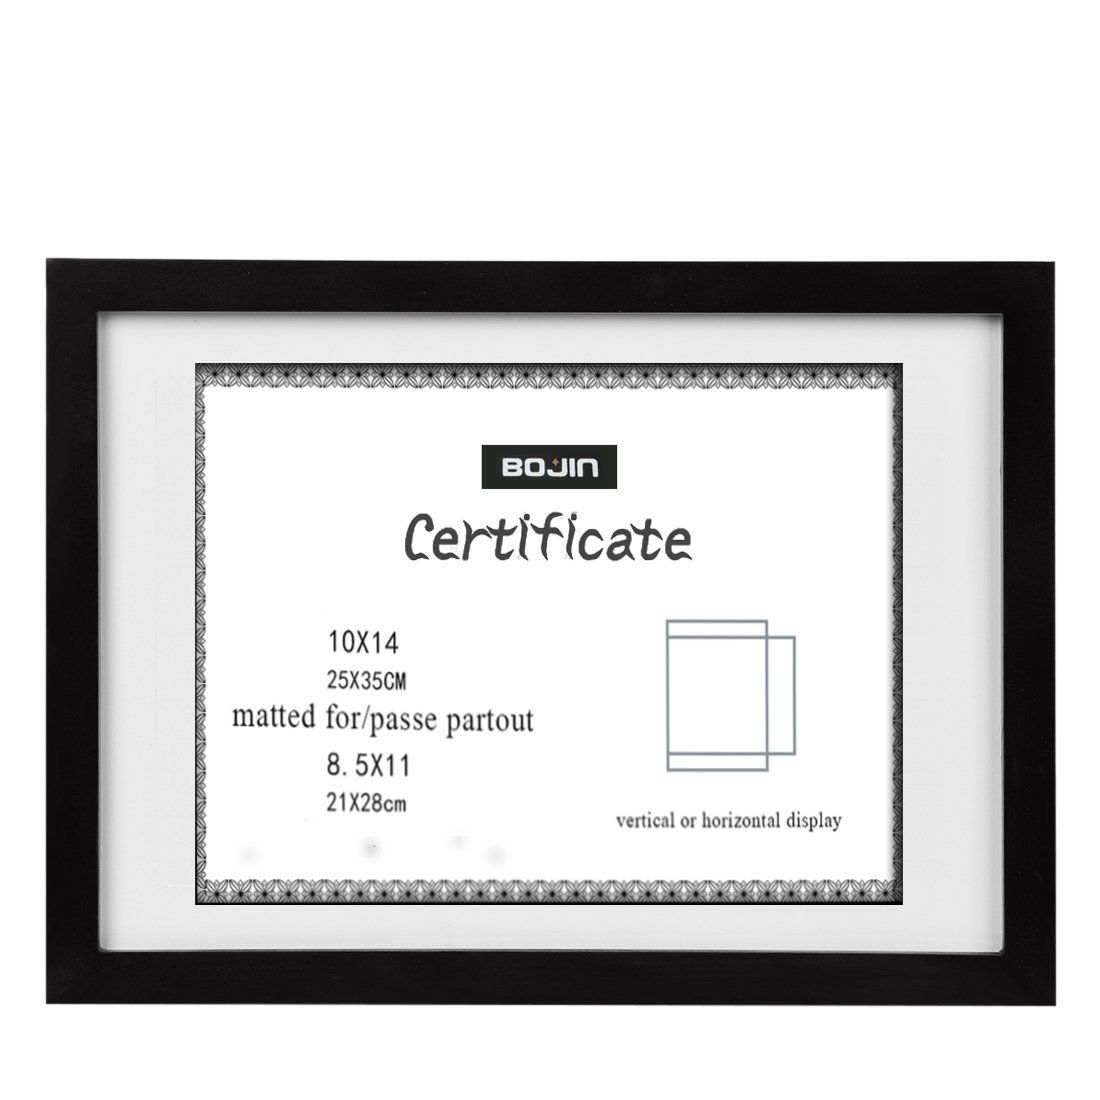 10x14 Wood Picture Frame Bojin Document Frame Made For Sized 8 5x11 Diploma With Mat 10x14 Picture Without Mat Black Ce Frame Wood Photo Frame Photo On Wood